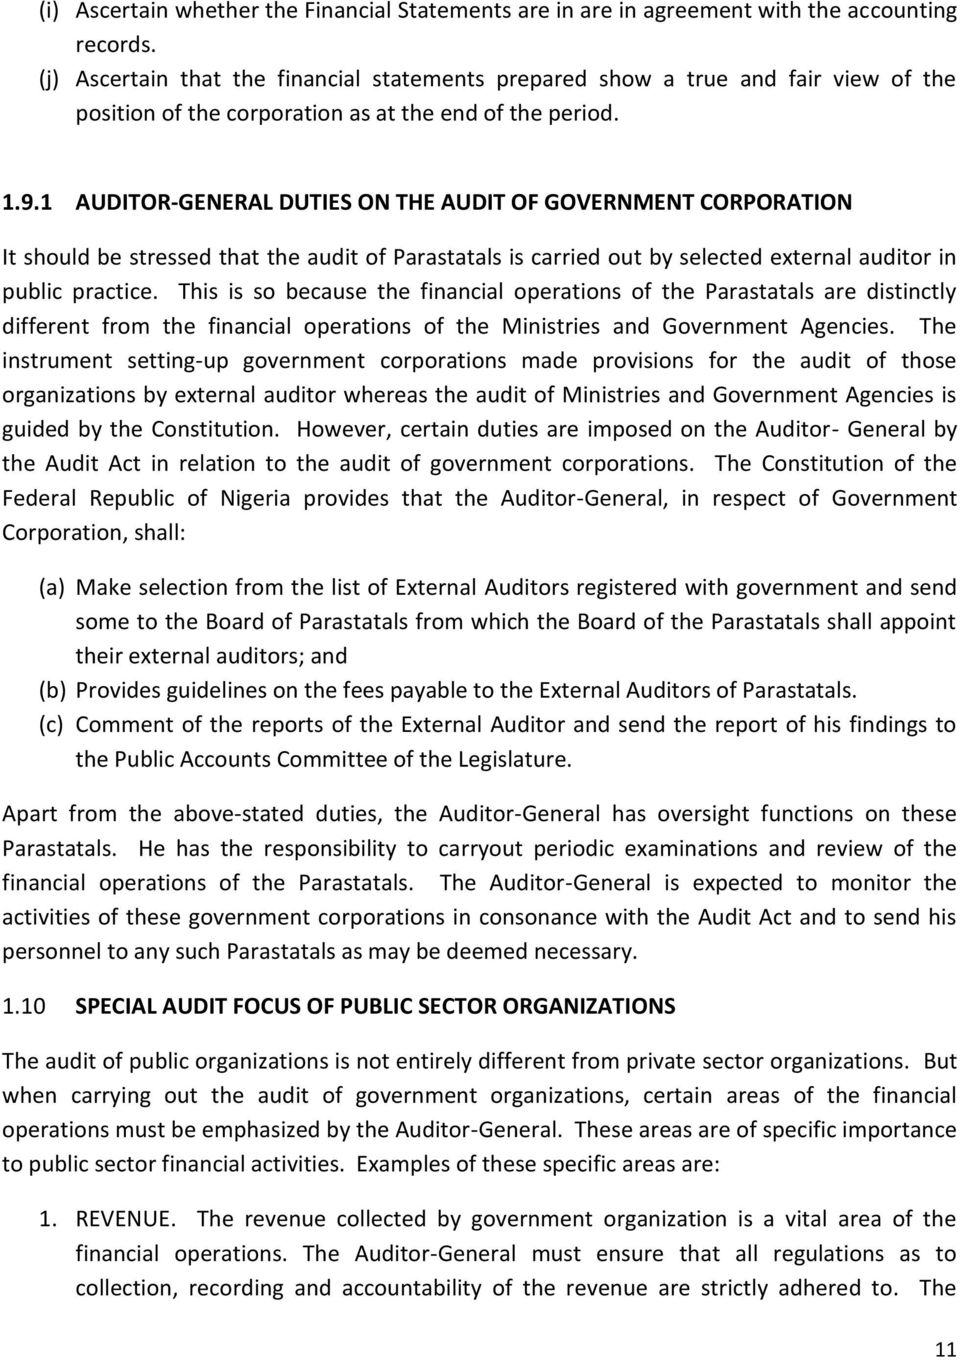 1 AUDITOR-GENERAL DUTIES ON THE AUDIT OF GOVERNMENT CORPORATION It should be stressed that the audit of Parastatals is carried out by selected external auditor in public practice.